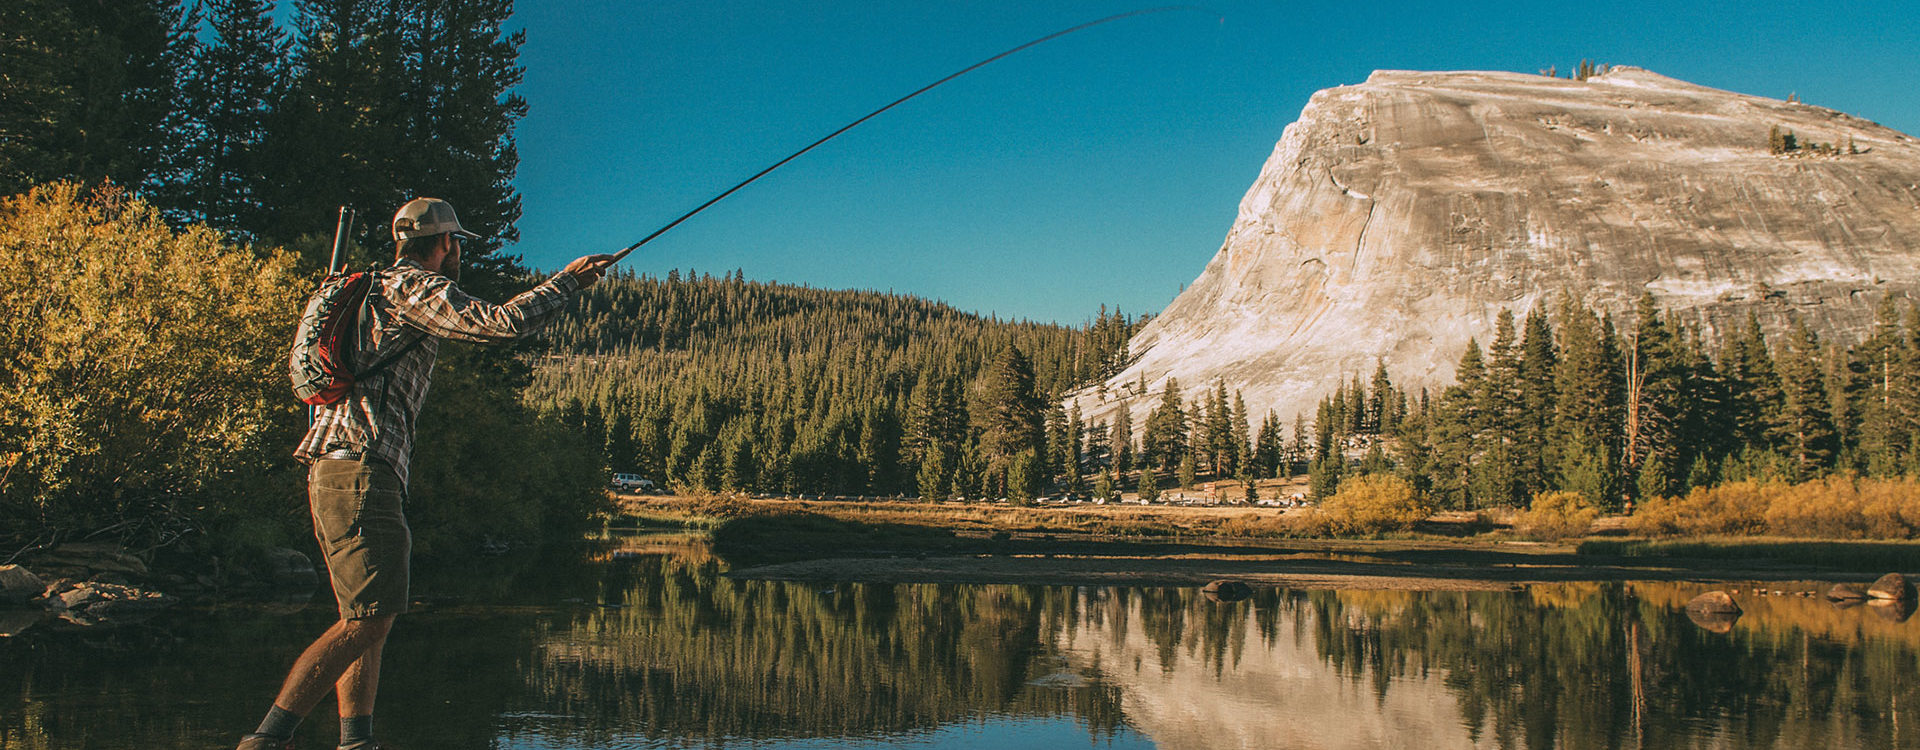 Fishing in Yosemite | Nation's Vacation